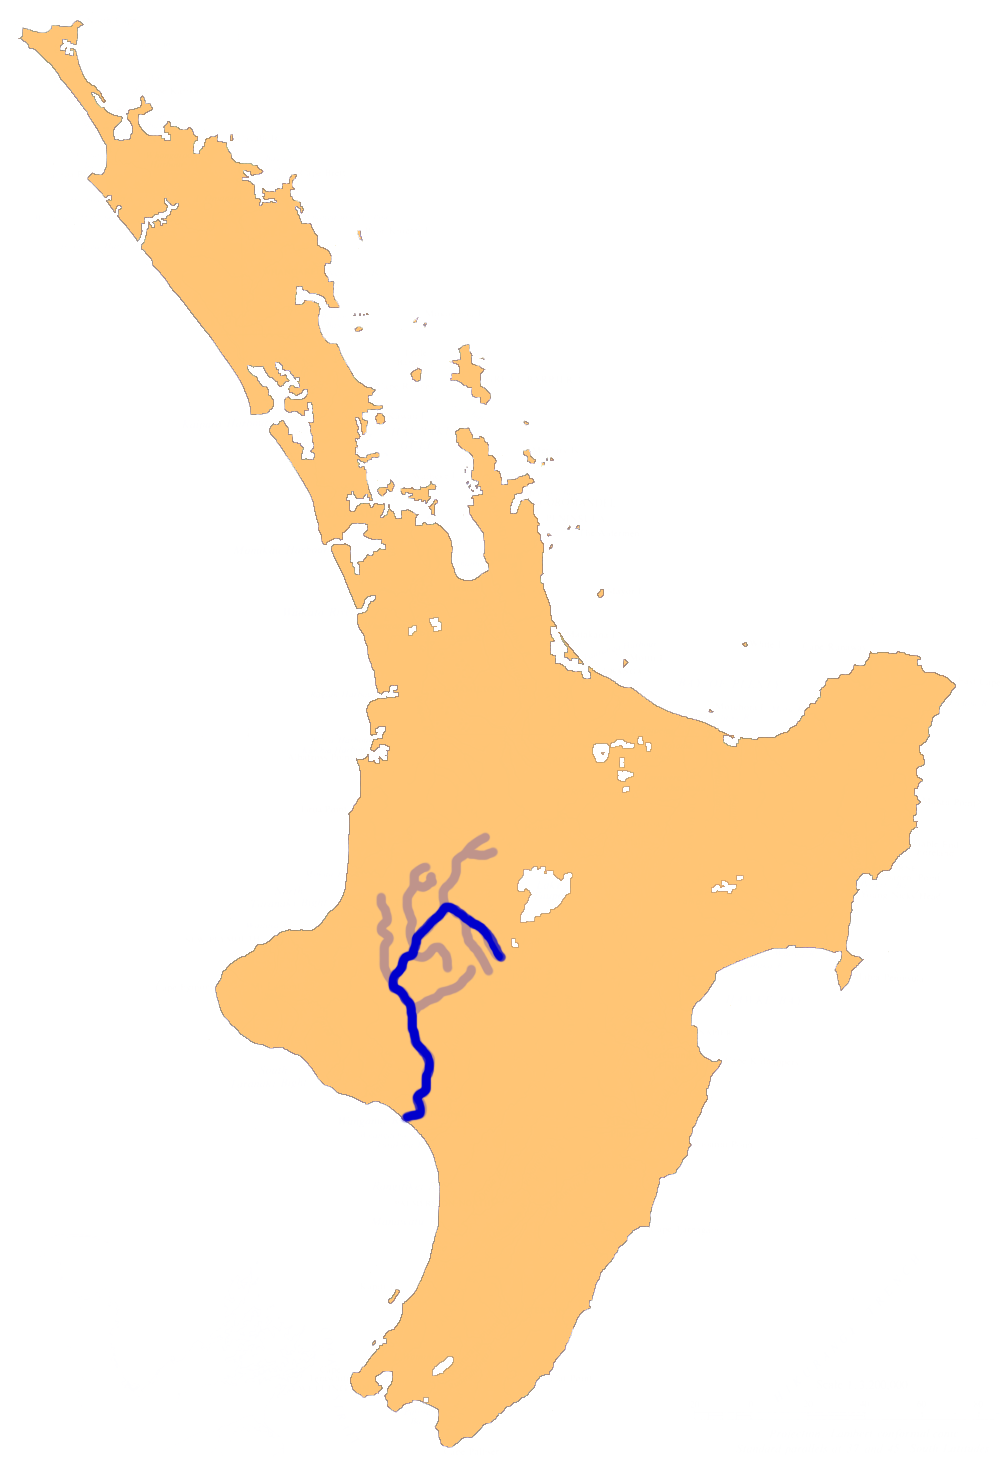 The course of the Whanganui